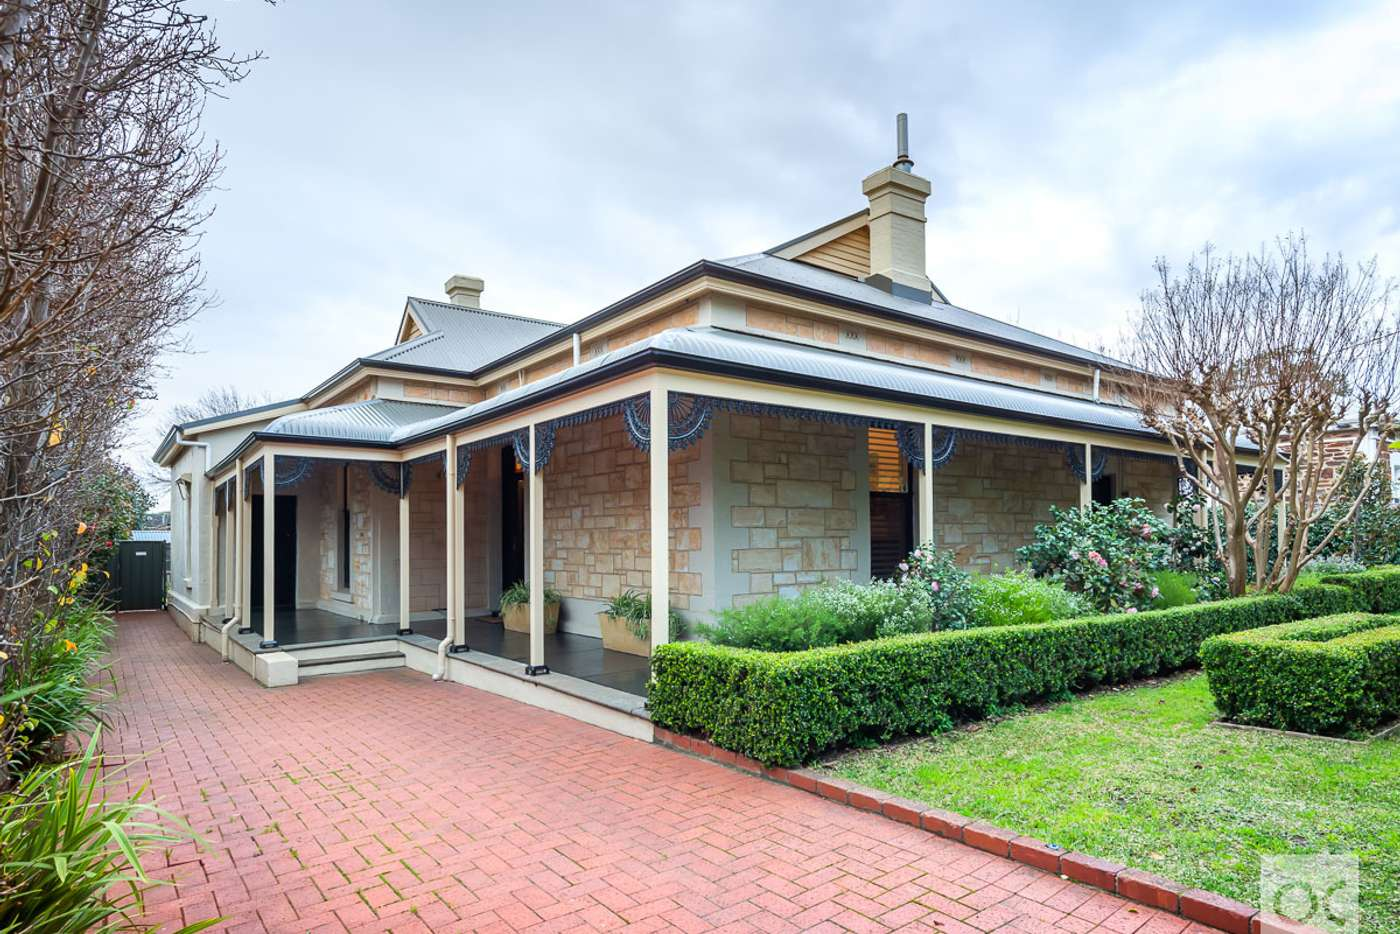 Main view of Homely house listing, 72 Fisher Street, Fullarton SA 5063